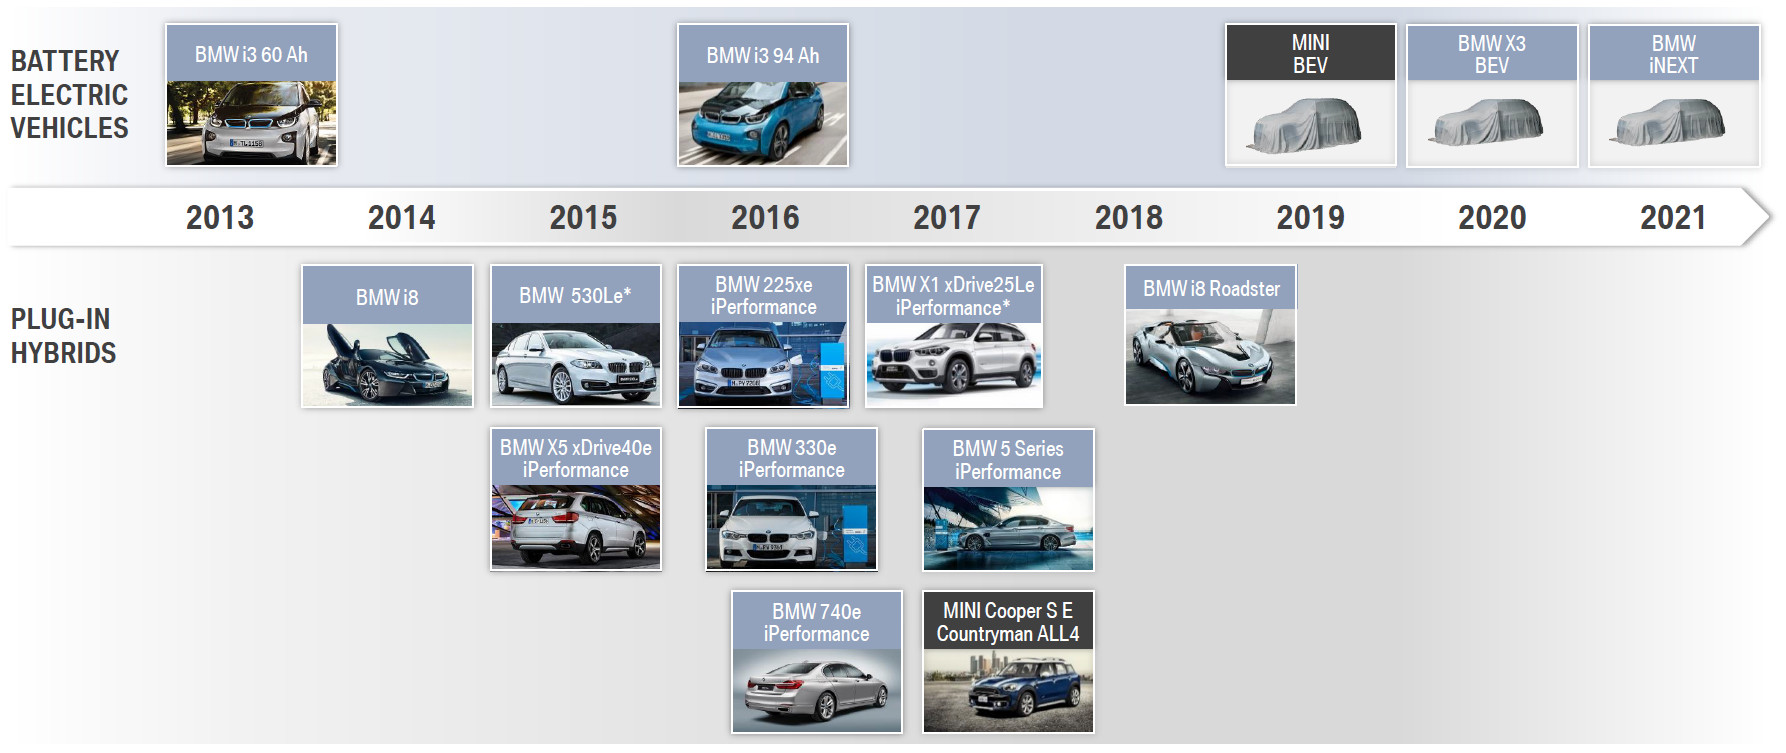 BMW's current and future electrified powertrain vehicle familly